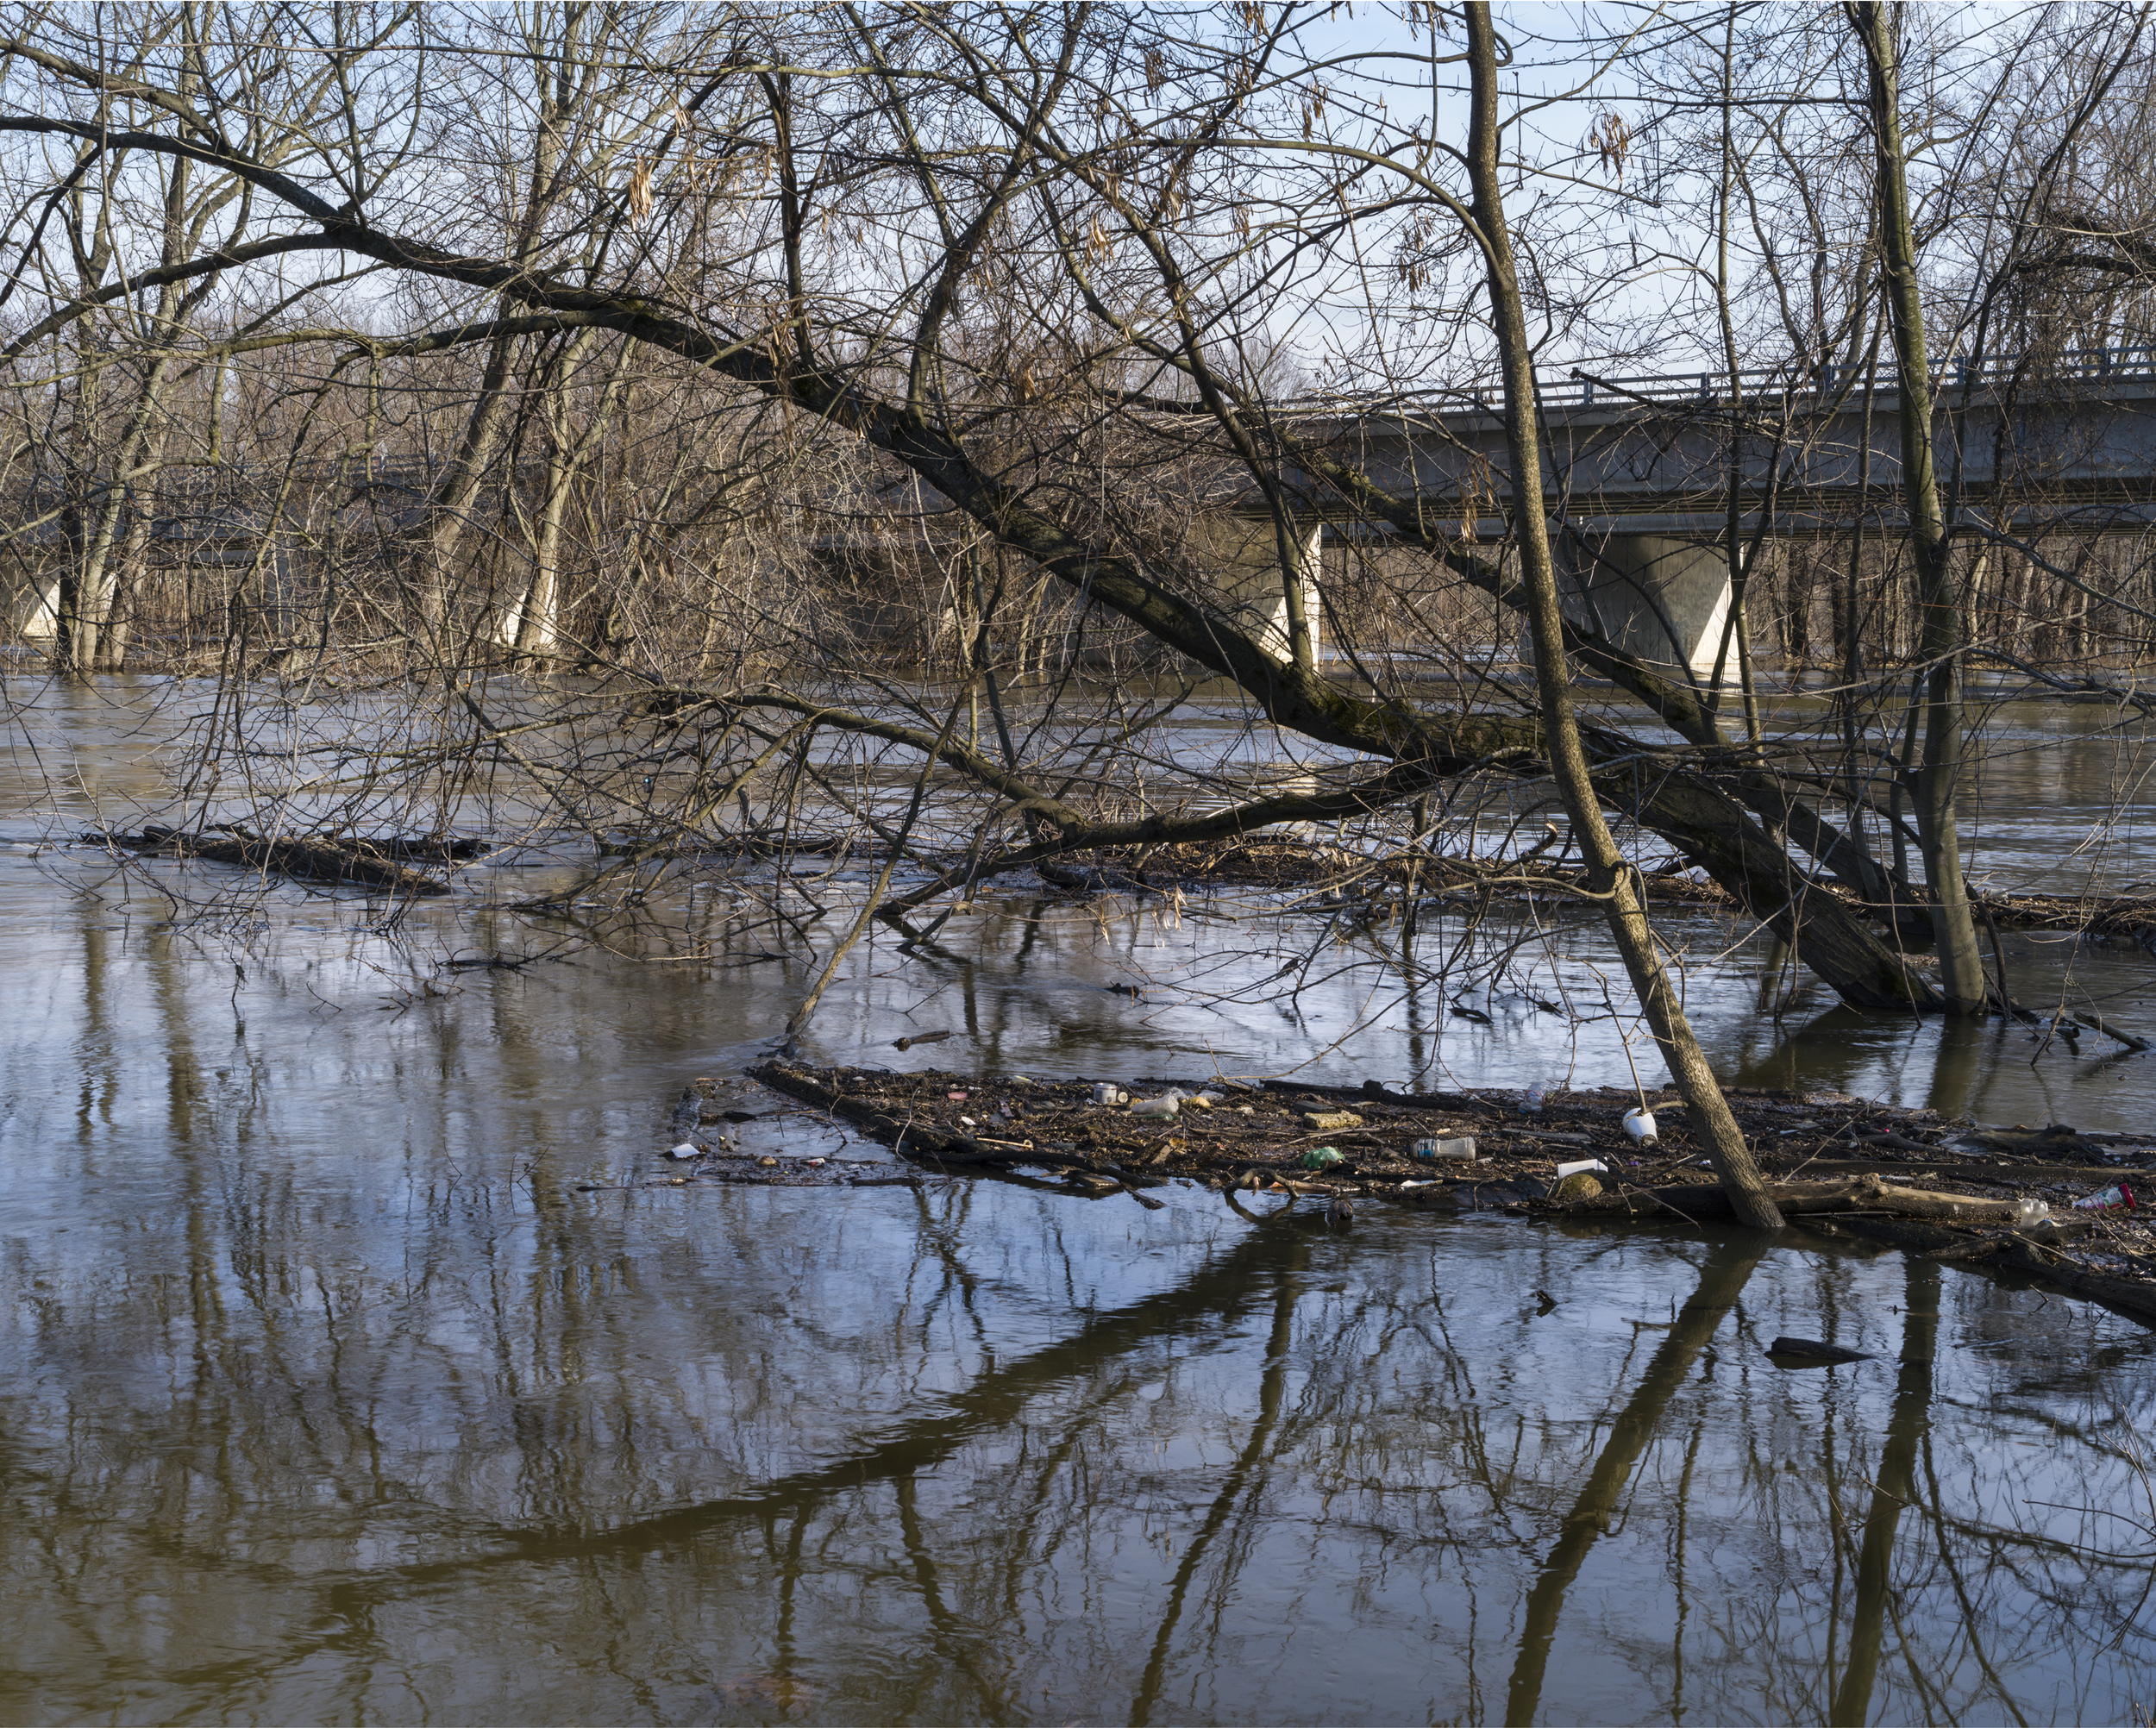 Flood water debris during the spring snow melt. Grand River at M45 in Allendale, MI  2014